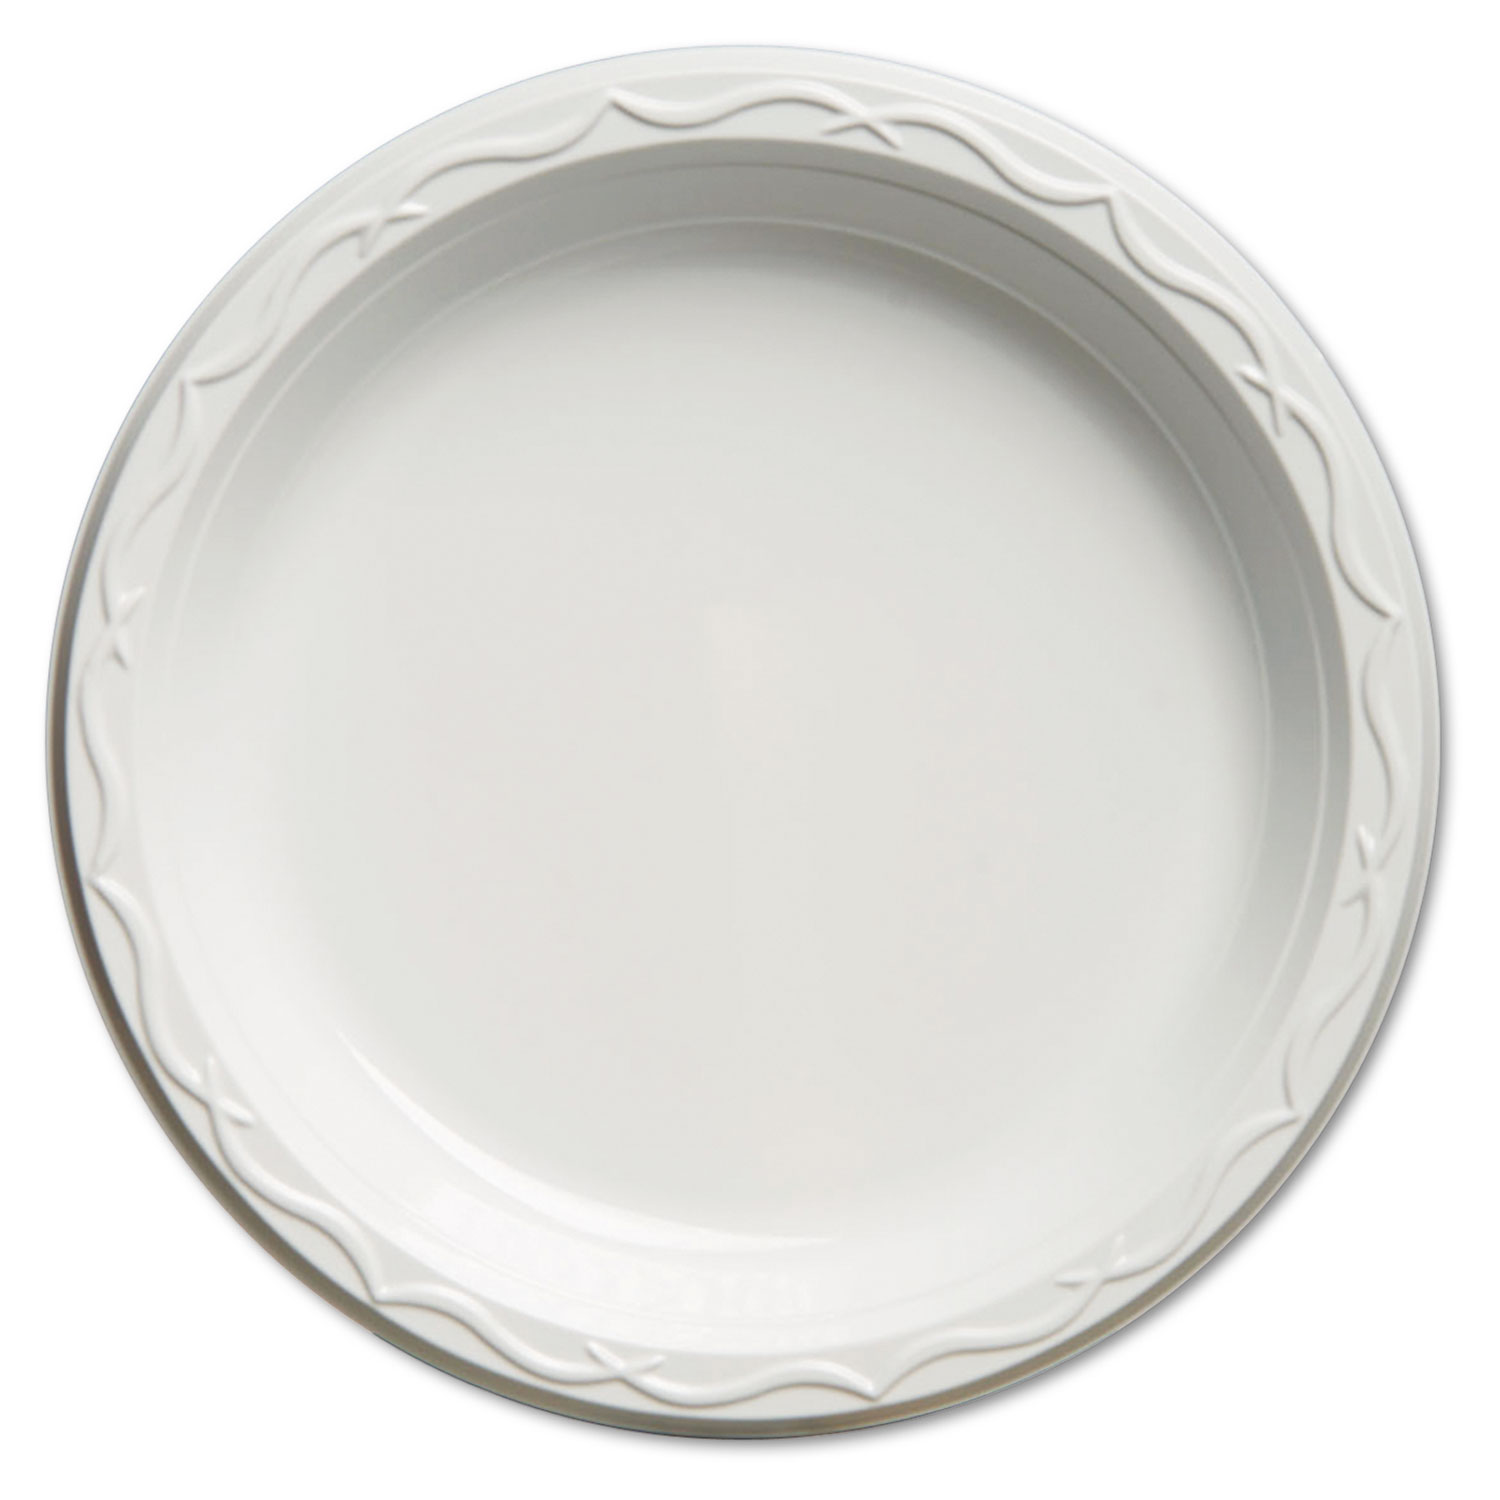 PLATE,PLS,9IN,WHI 4/125